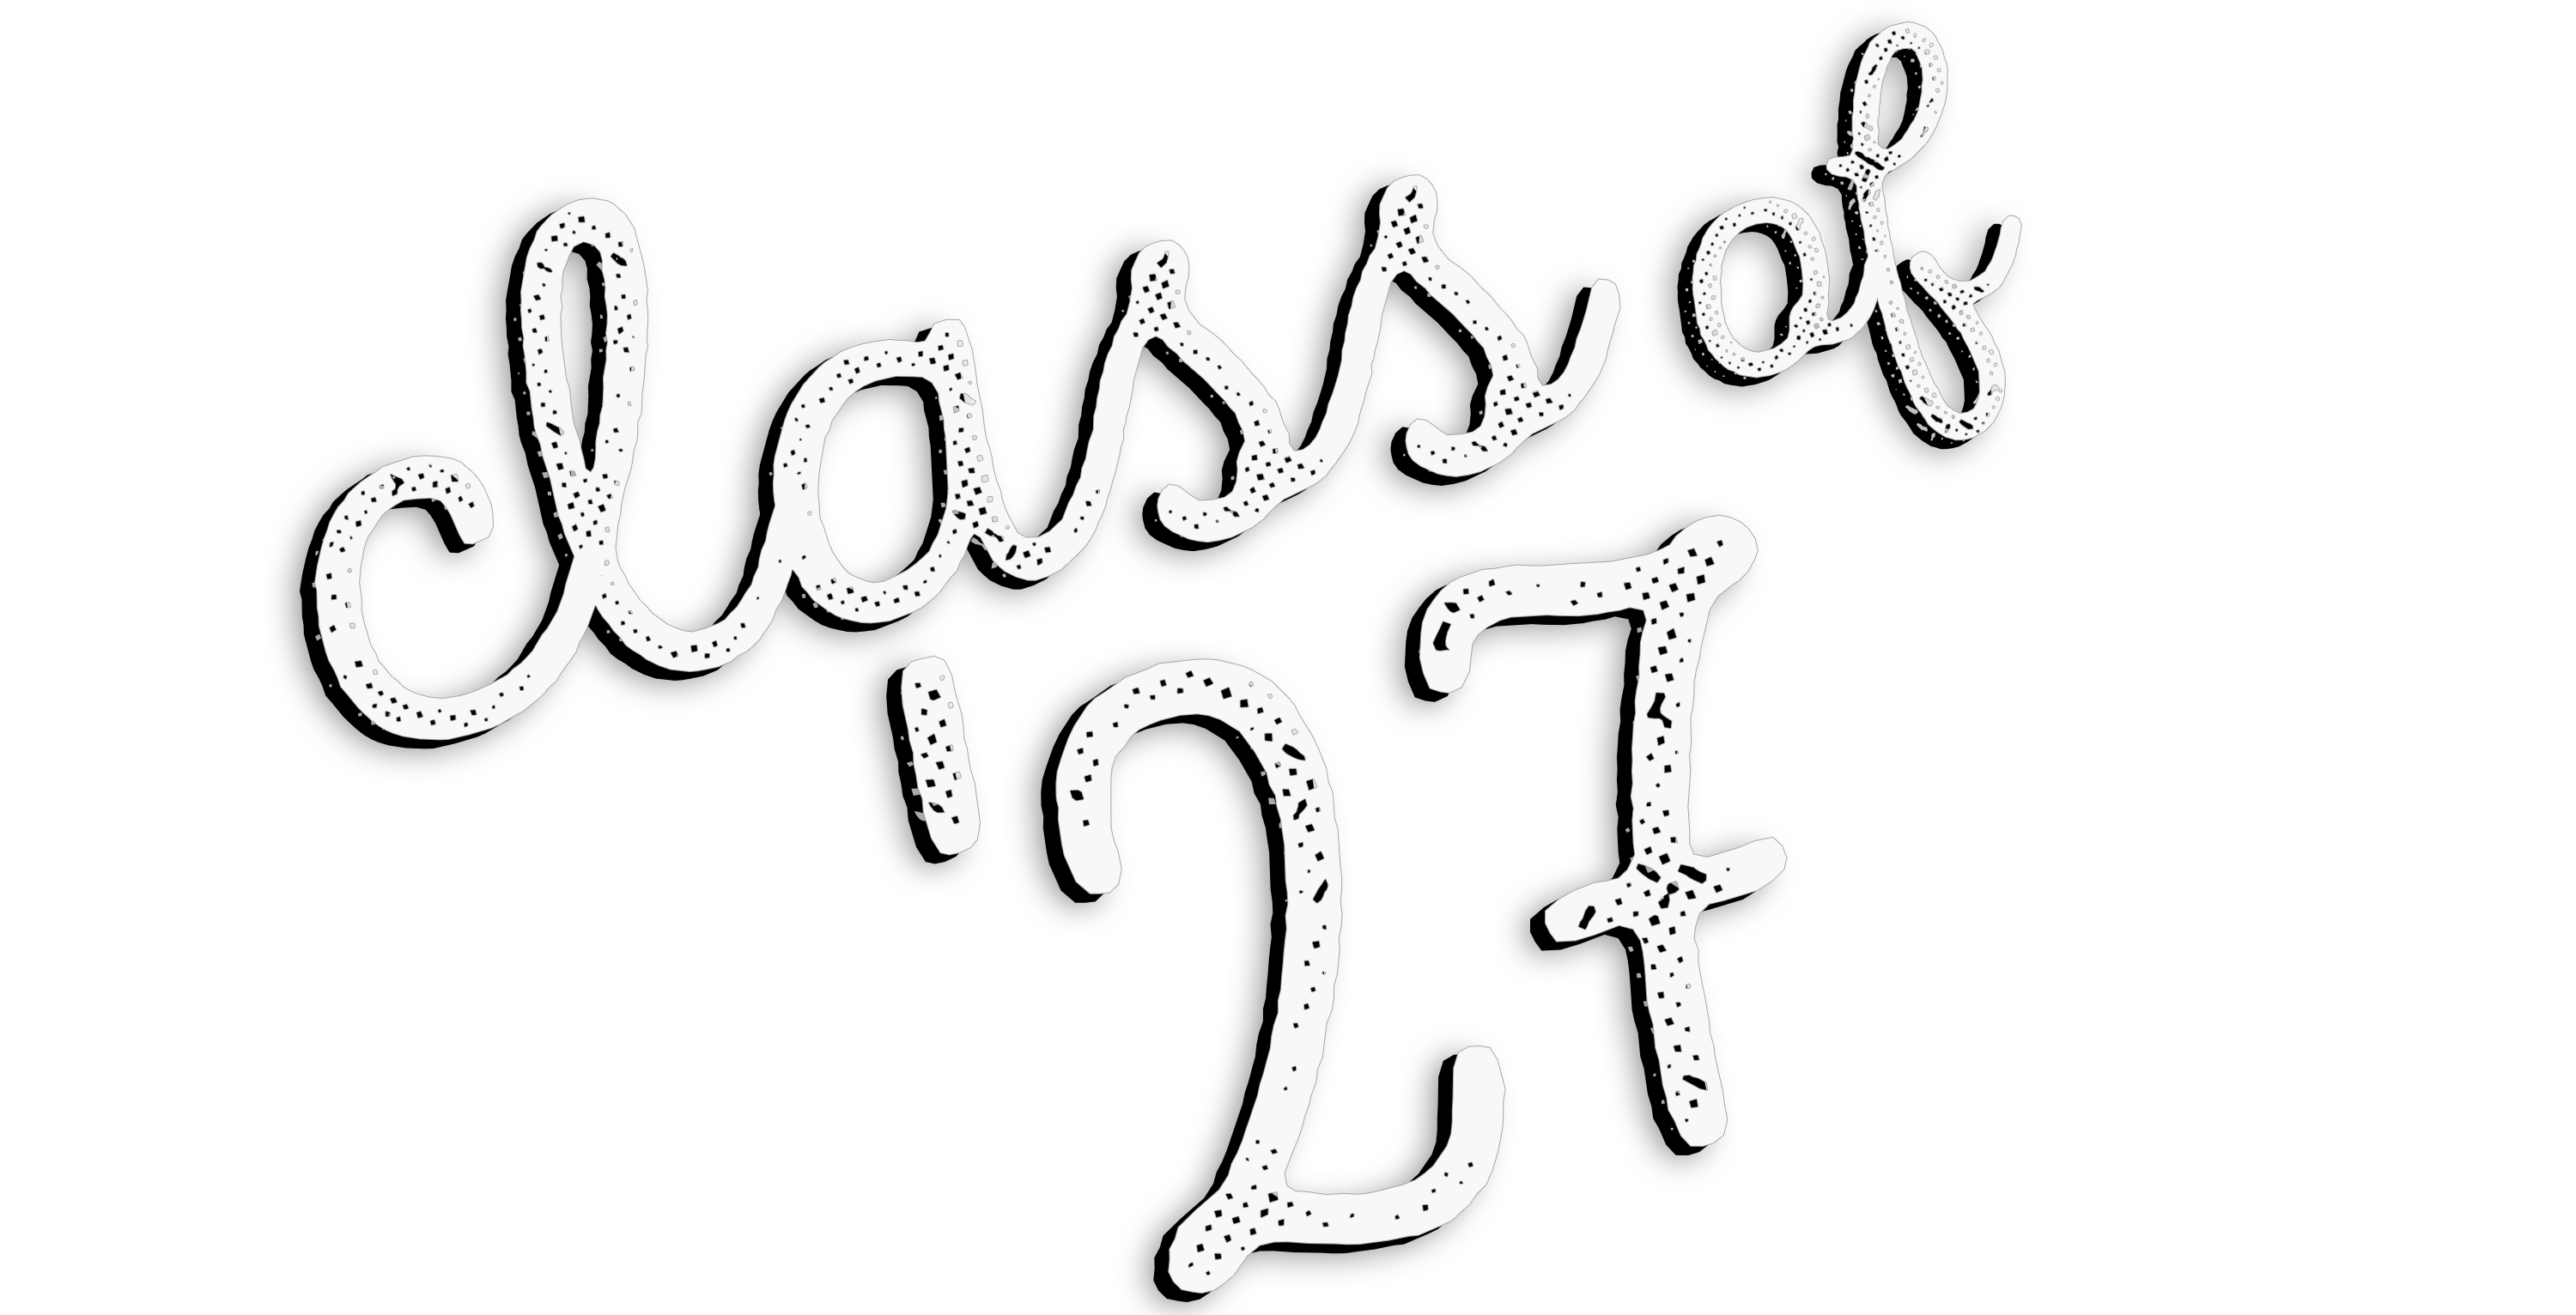 Class of '27: America Reframed